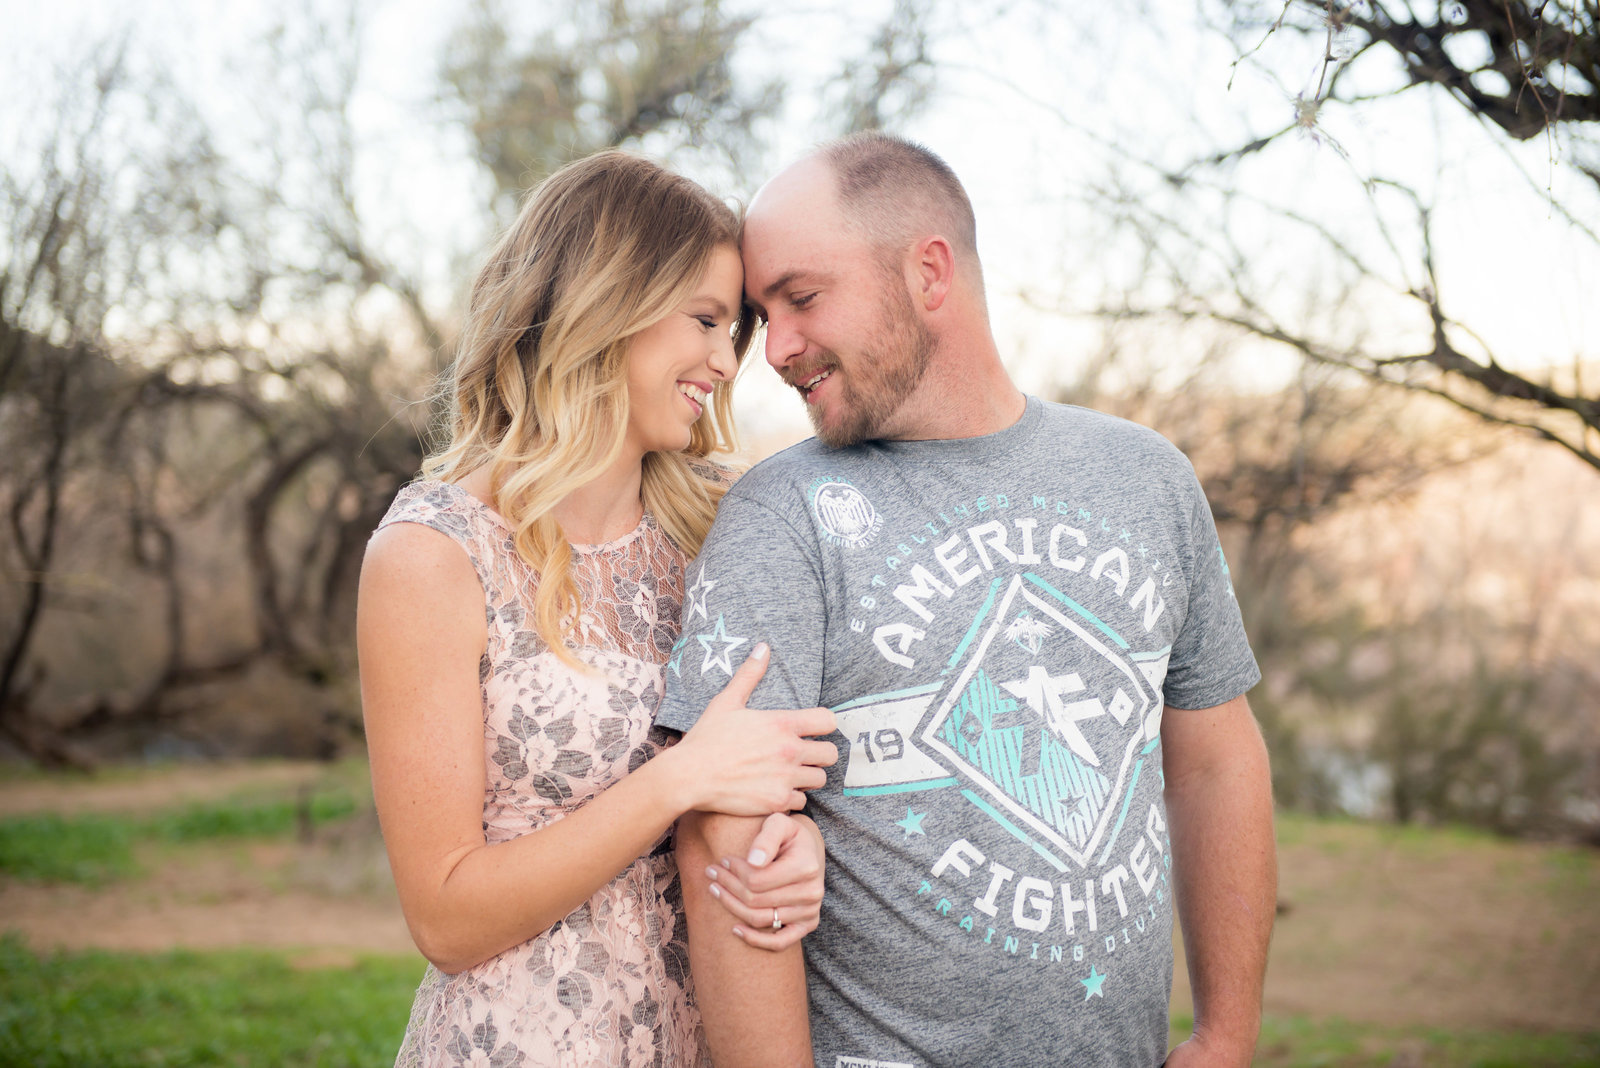 Cody and Britt Social Media_001_January 30, 2016